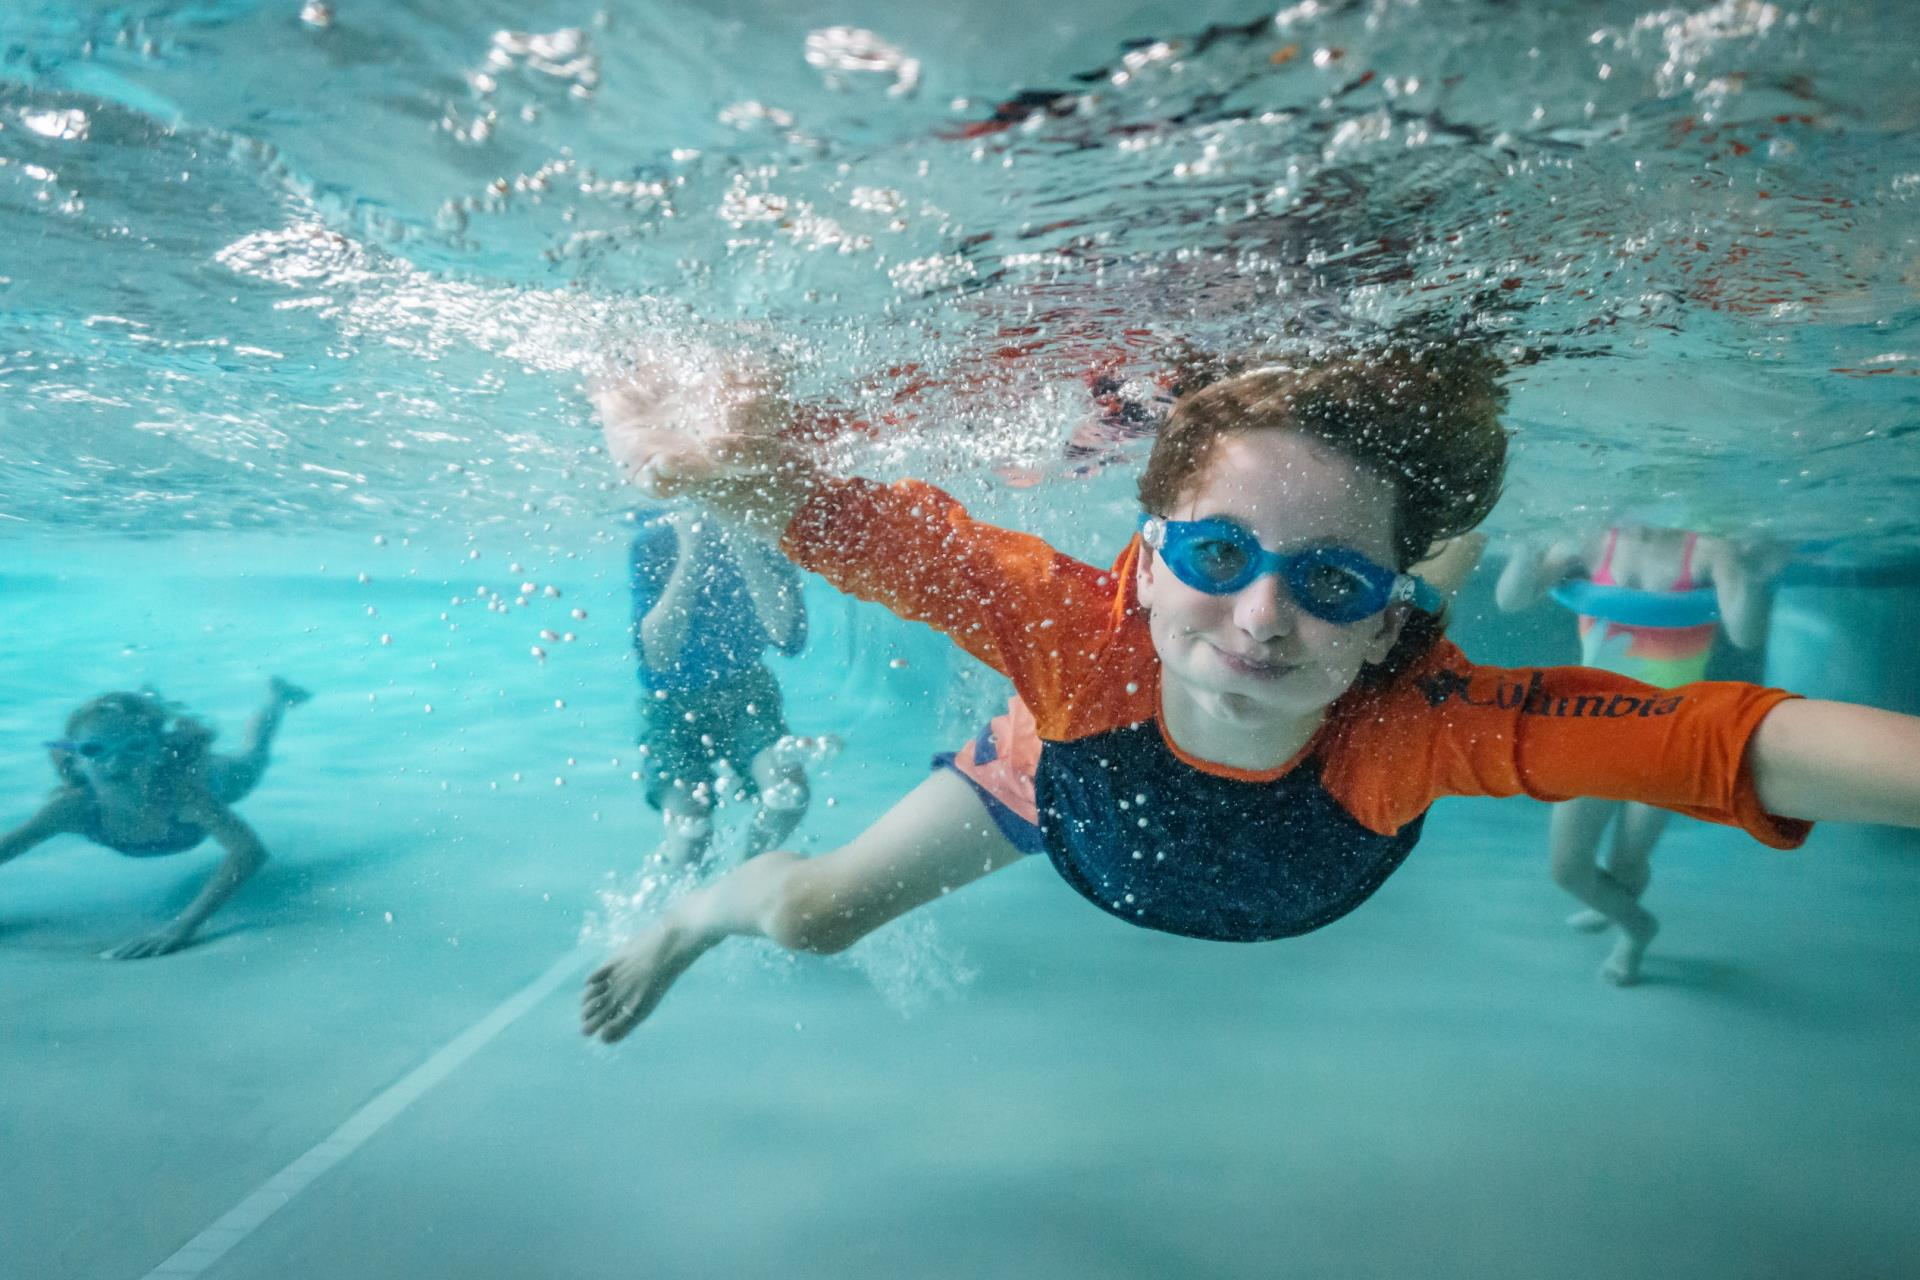 Boy in blue and orange shirt and goggles underwater with other children